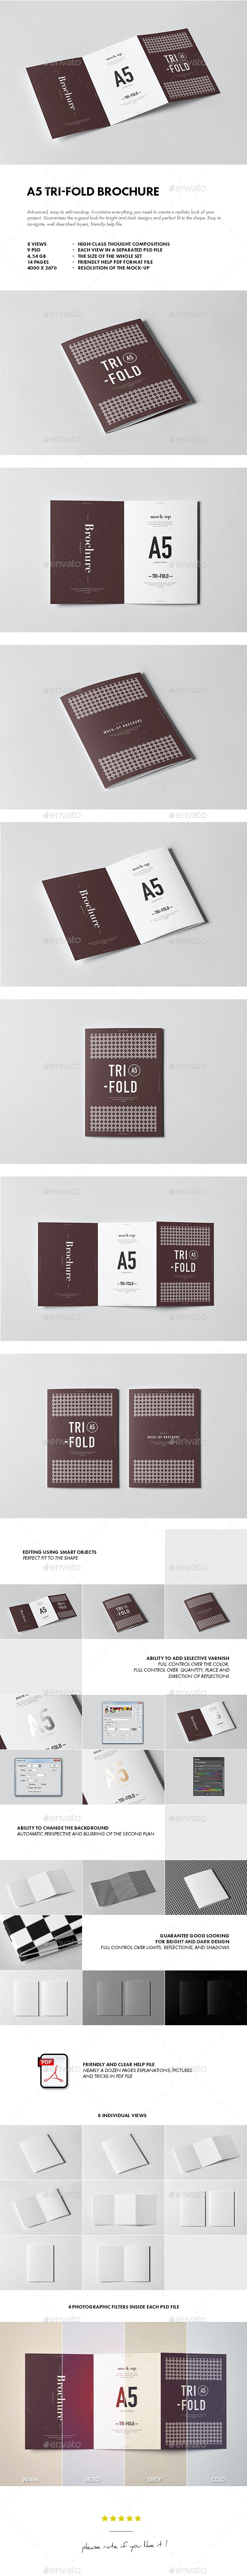 Tri-Fold A5 Brochure Mock-up 2 - Brochures Print